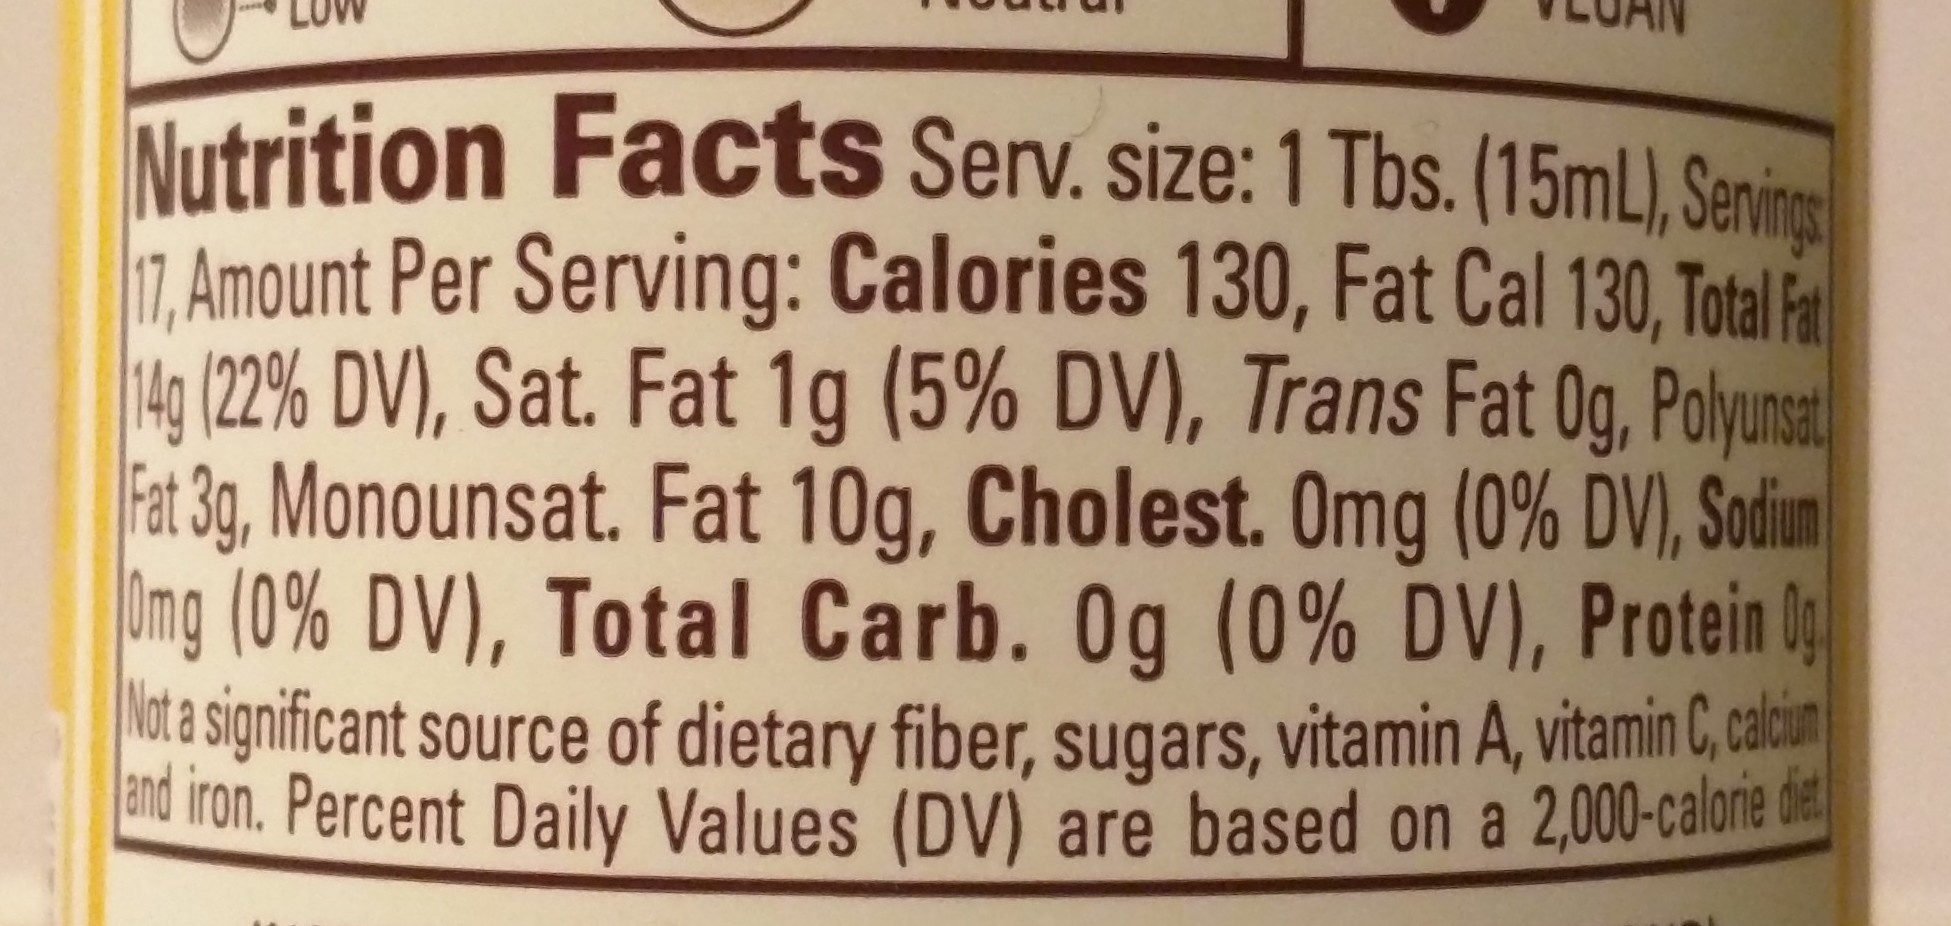 Roasted Almond Oil - Nutrition facts